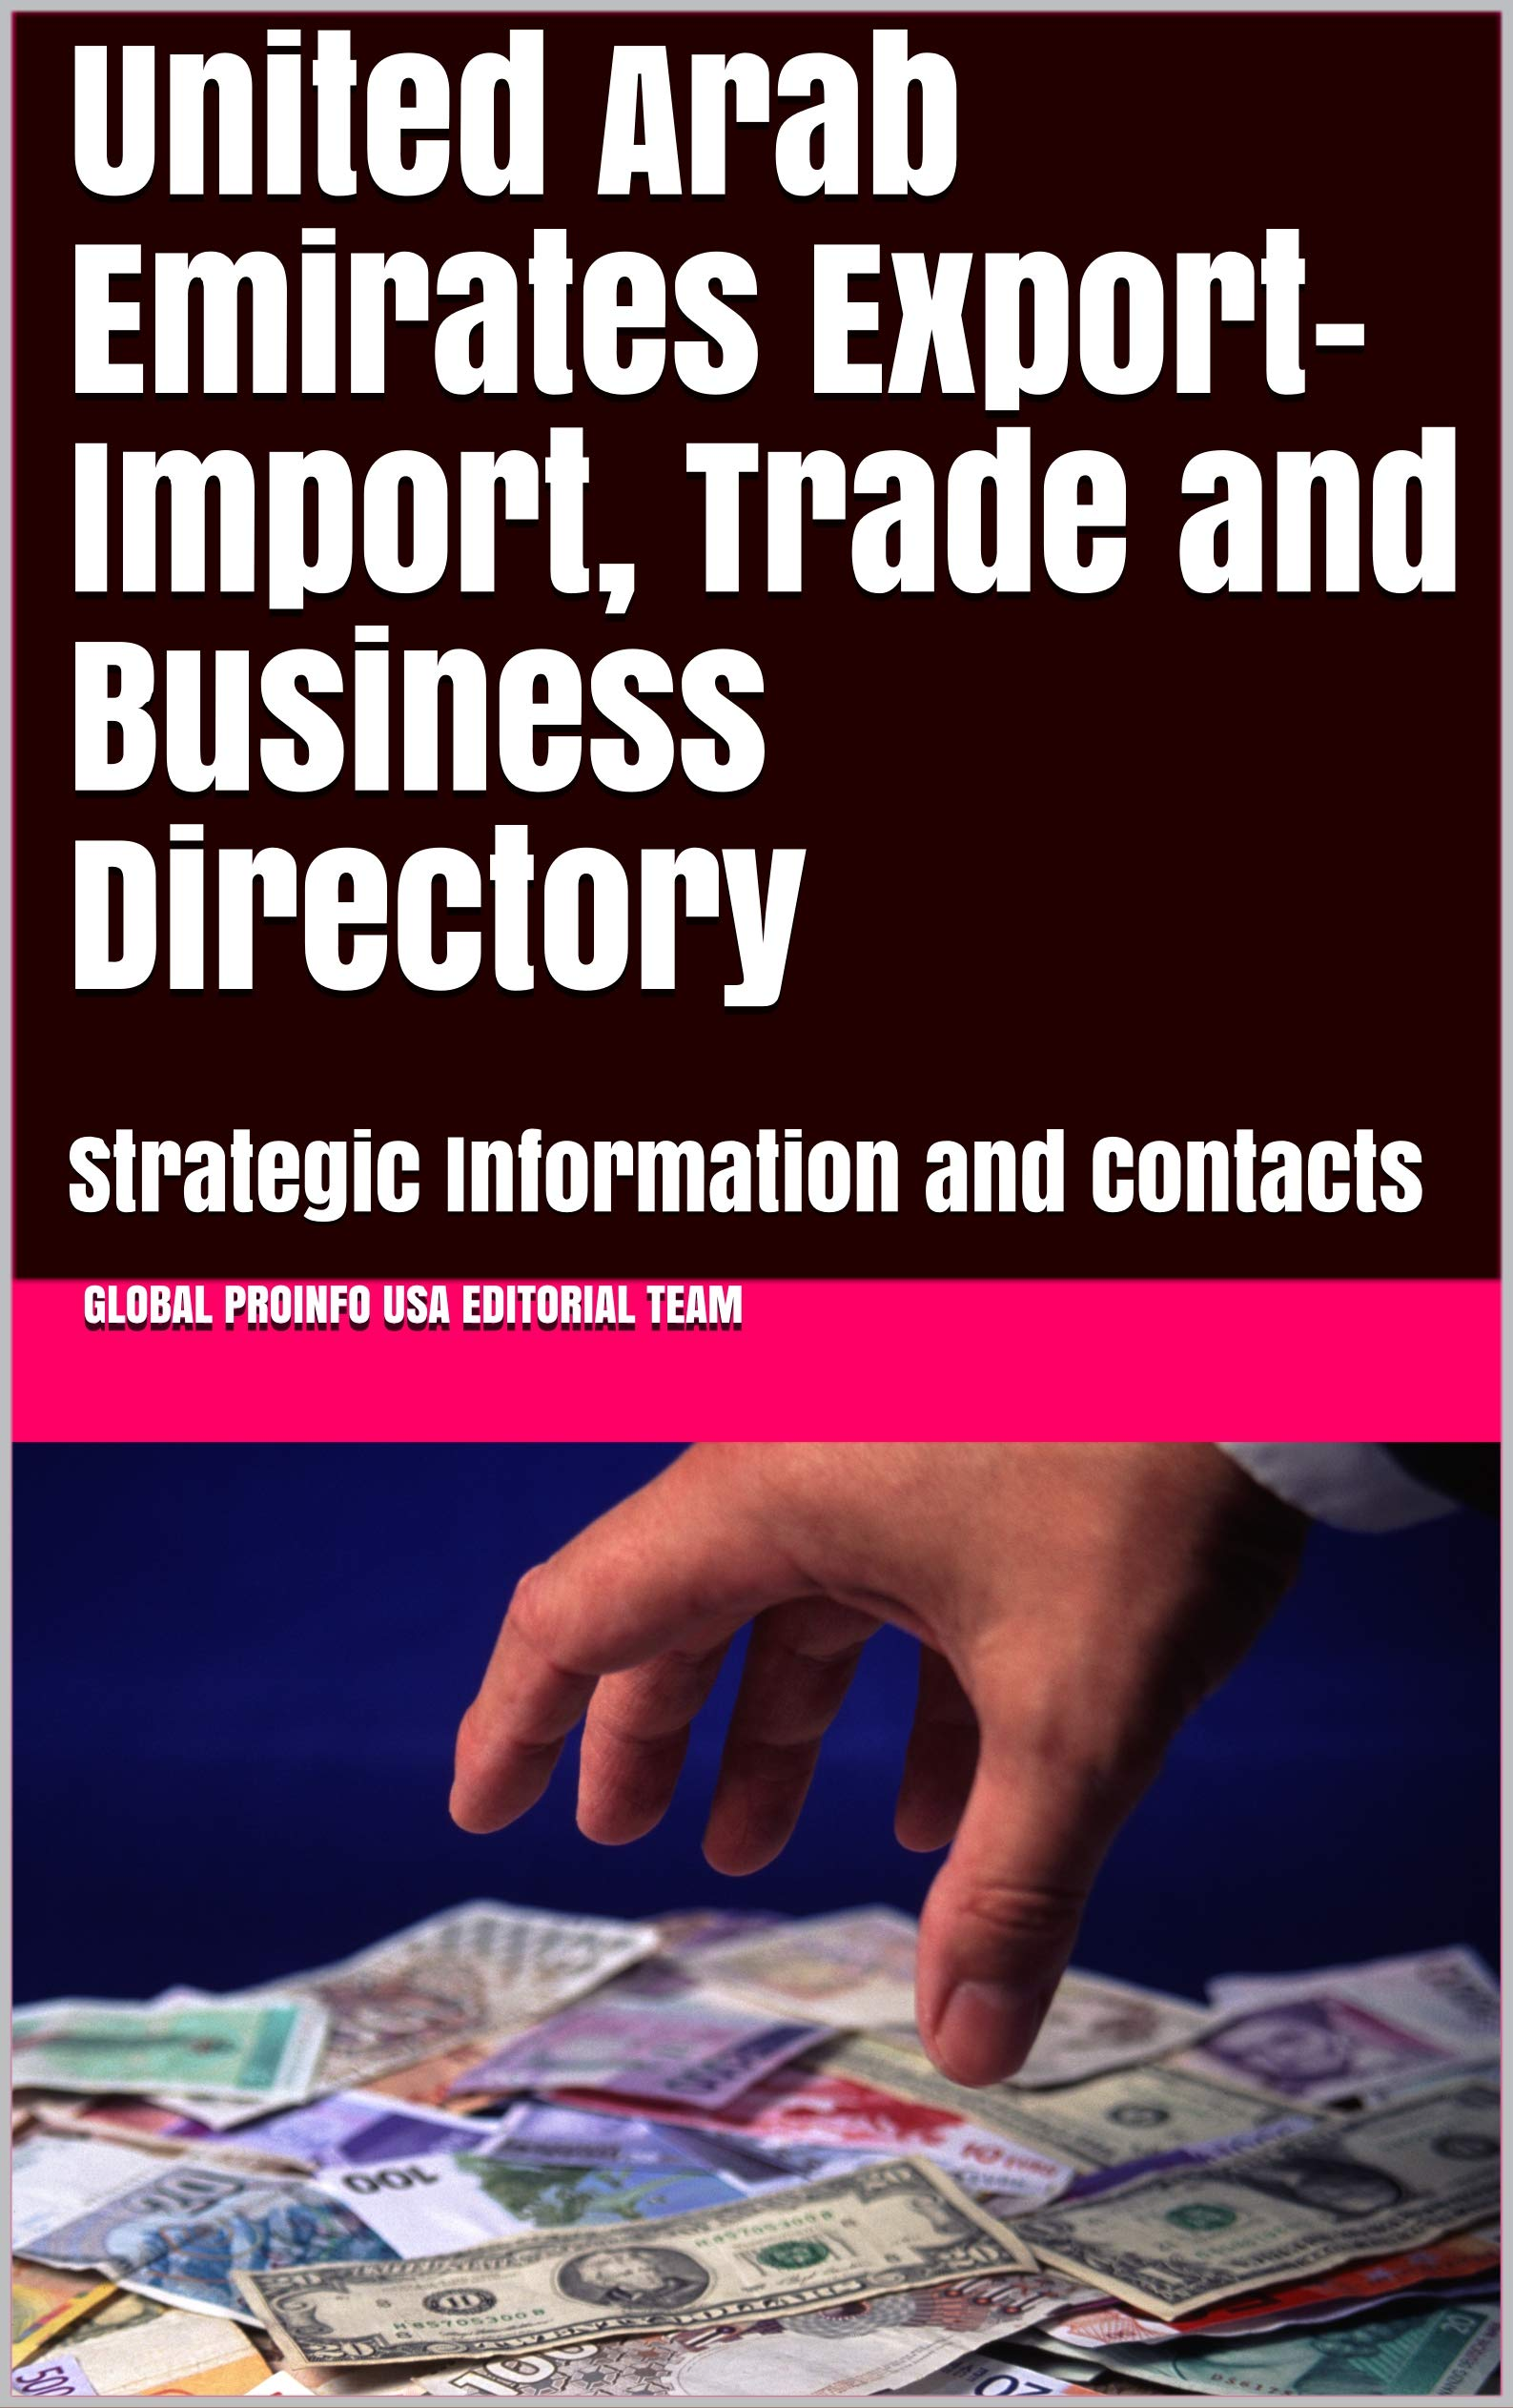 United Arab Emirates Export-Import, Trade and Business Directory : Strategic Information and Contacts (World Export-Import Opportunities Library Book 500)